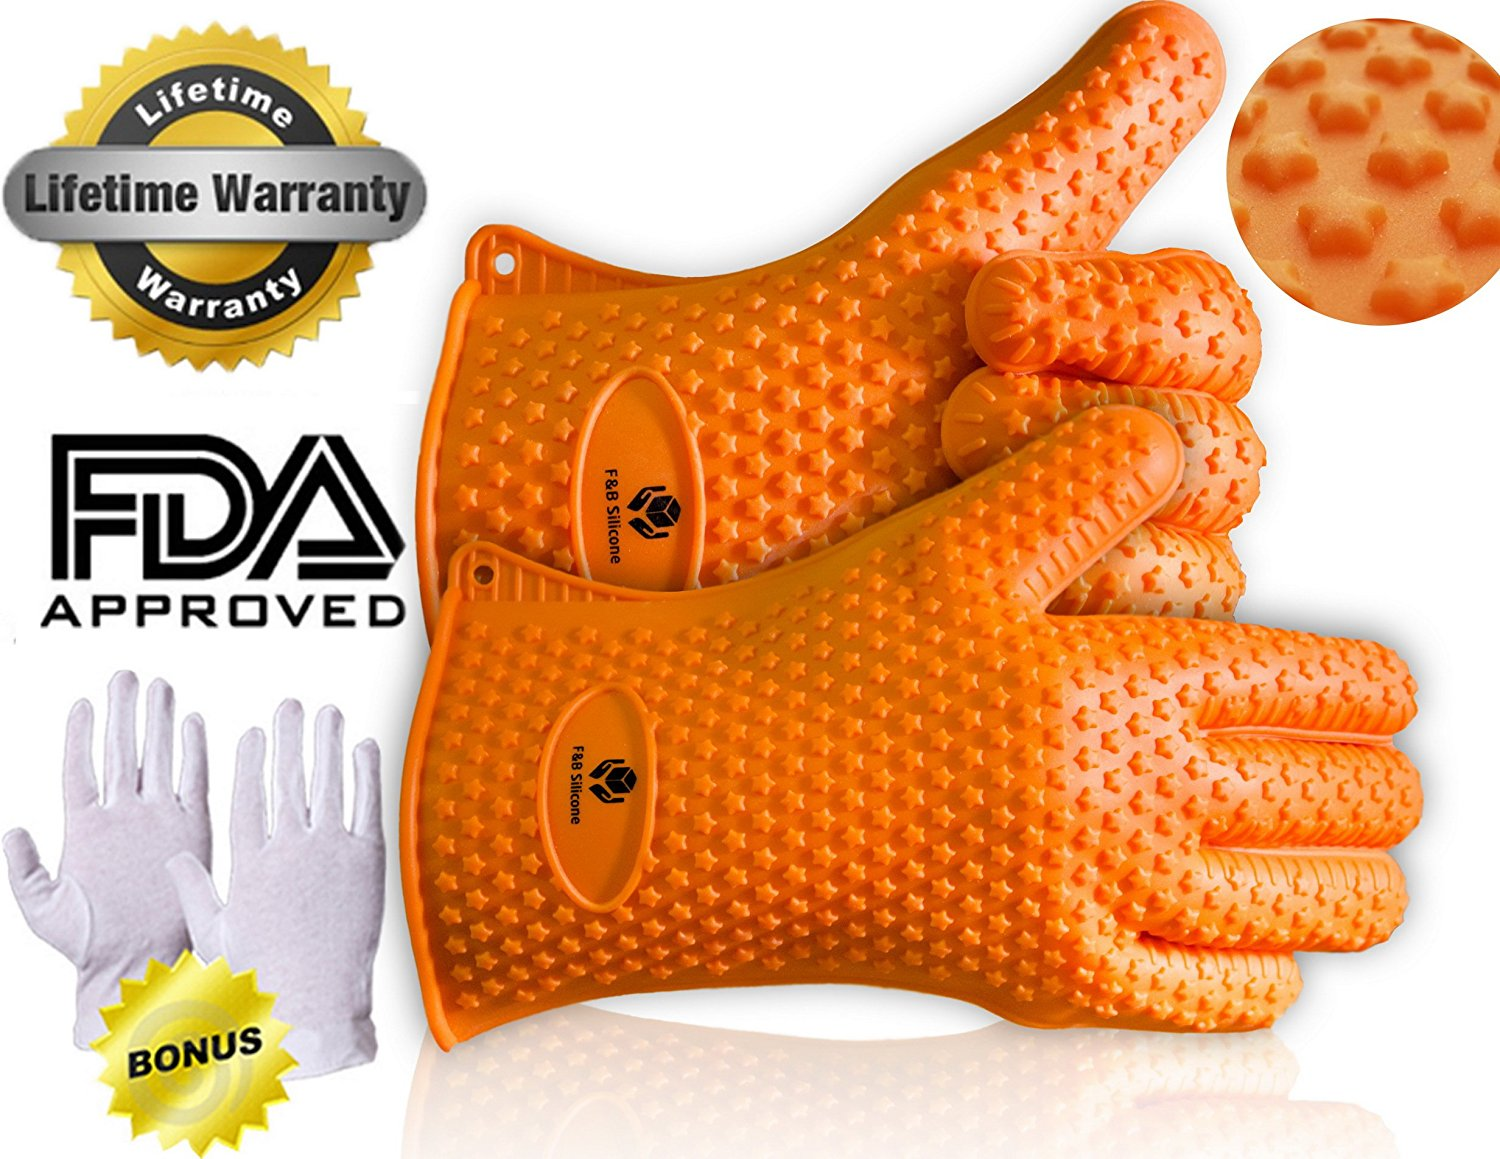 !!Final Clearance!! Silicone BBQ Star Gloves Silicone Heat Resistant Grilling BBQ Gloves for Cooking, Baking, Smoking & Potholder, !One Pair! ** Bonus Inside ** !!Final Clearance!!